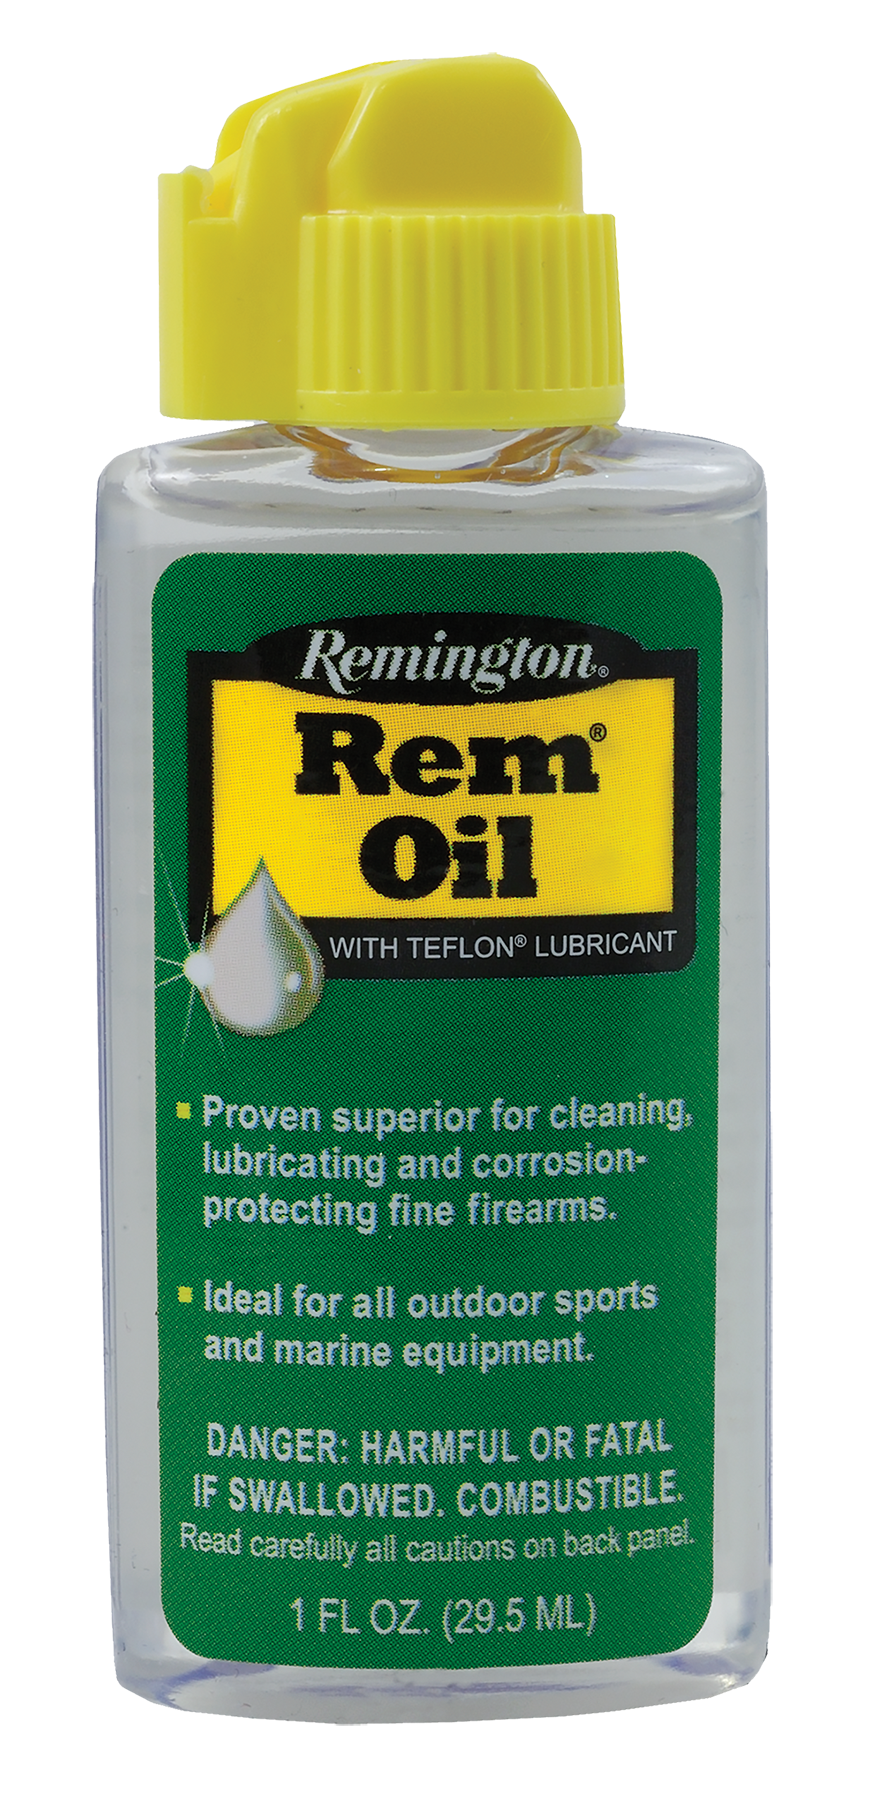 Remington Accessories 26617 Rem Oil Lubricant 1 oz